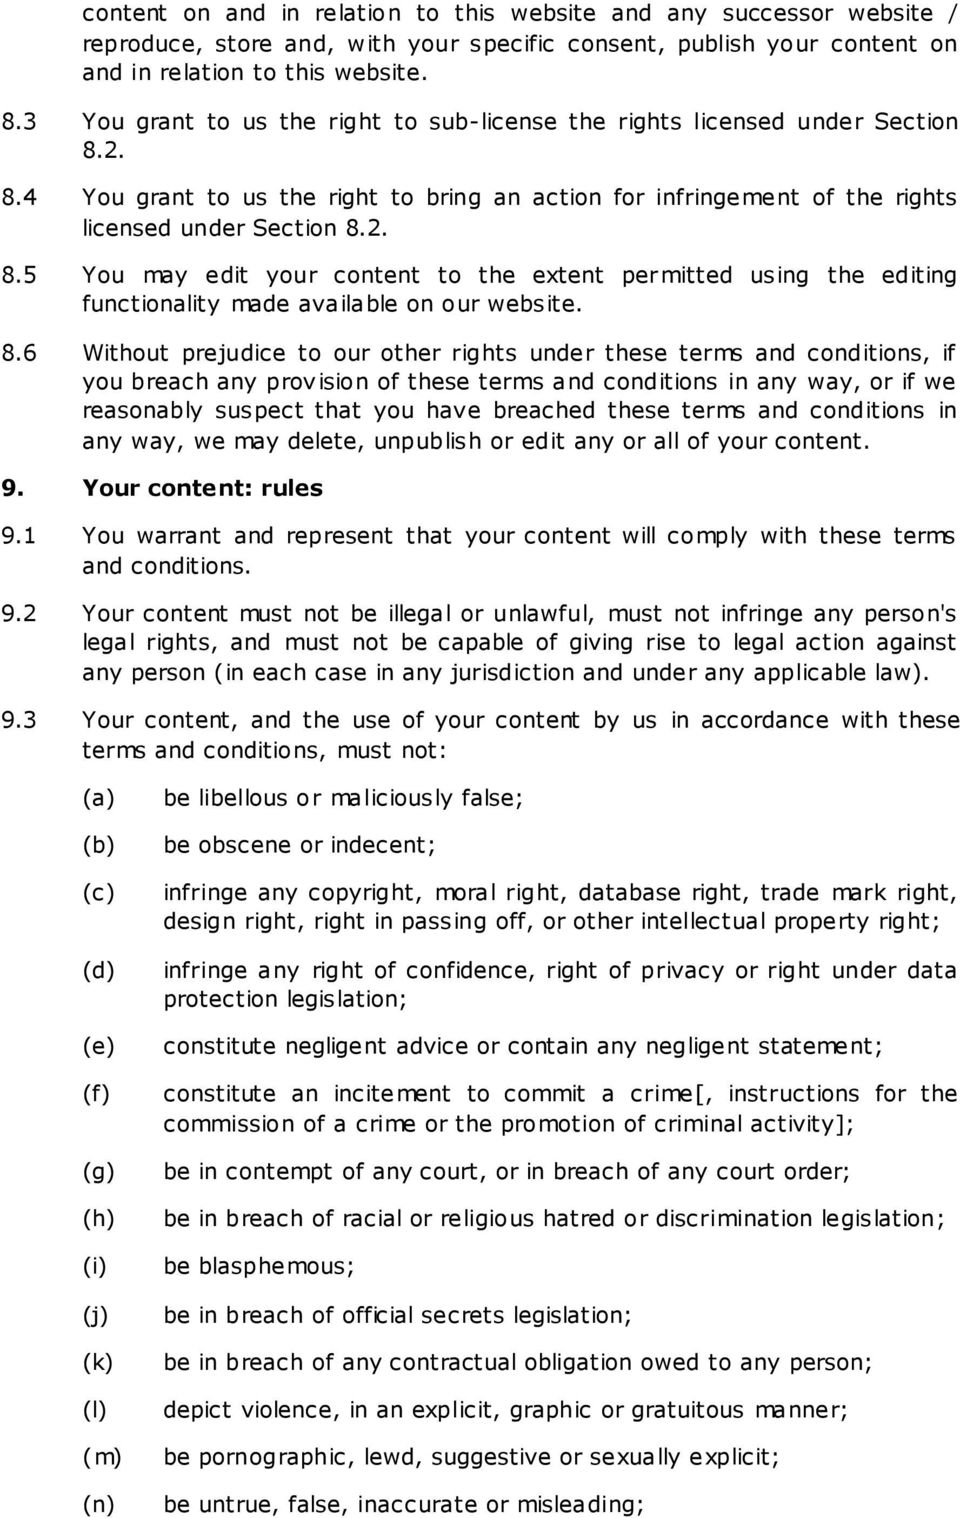 8.6 Without prejudice to our other rights under these terms and conditions, if you breach any provision of these terms and conditions in any way, or if we reasonably suspect that you have breached